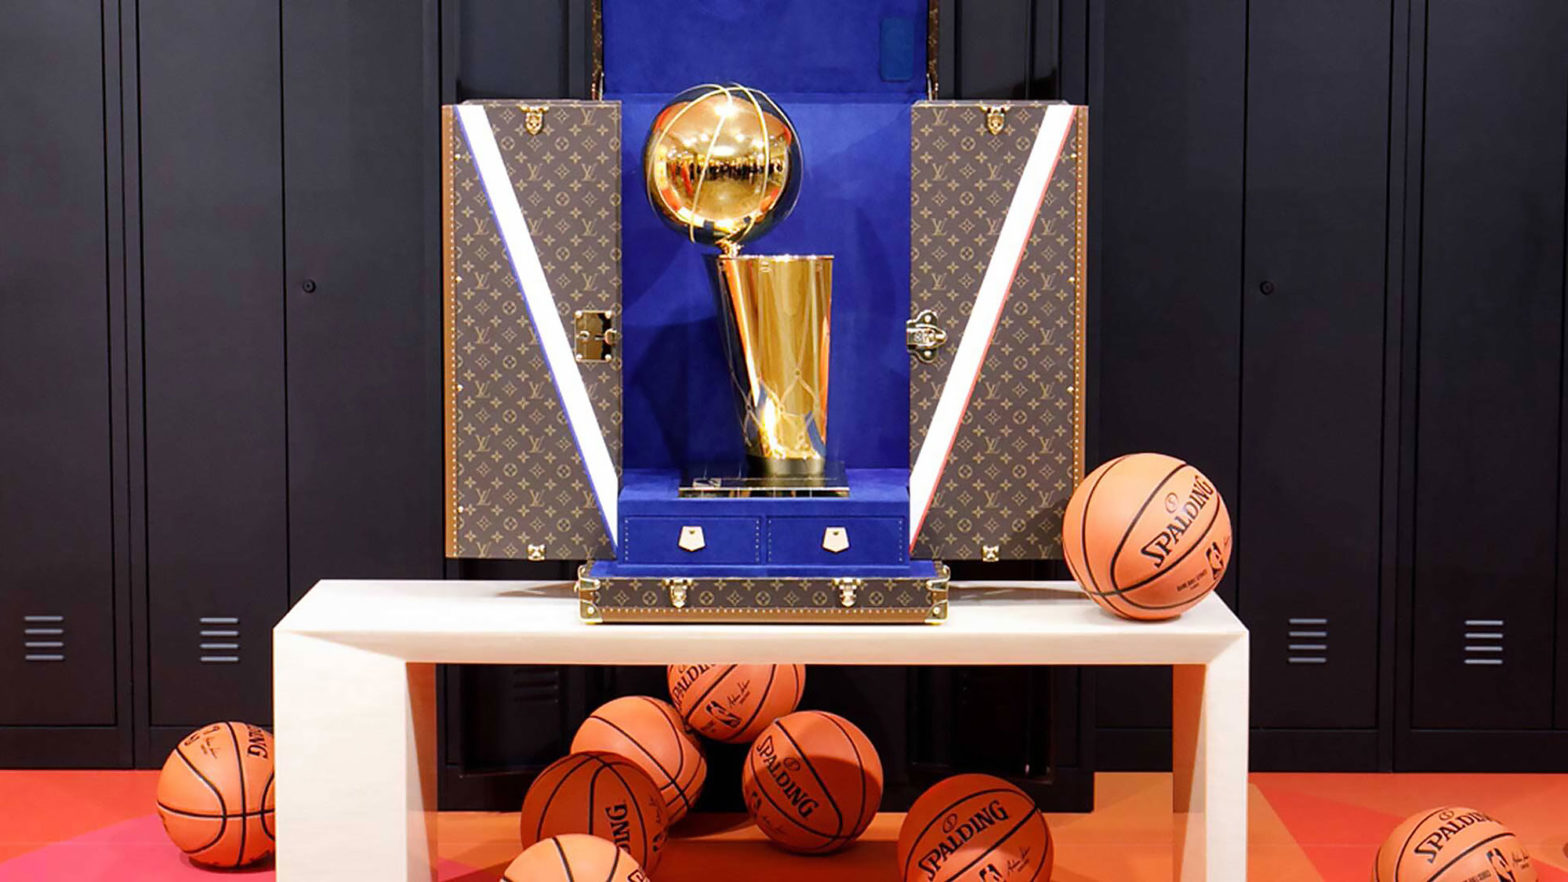 Louis Vuitton x NBA Trophy Travel Case